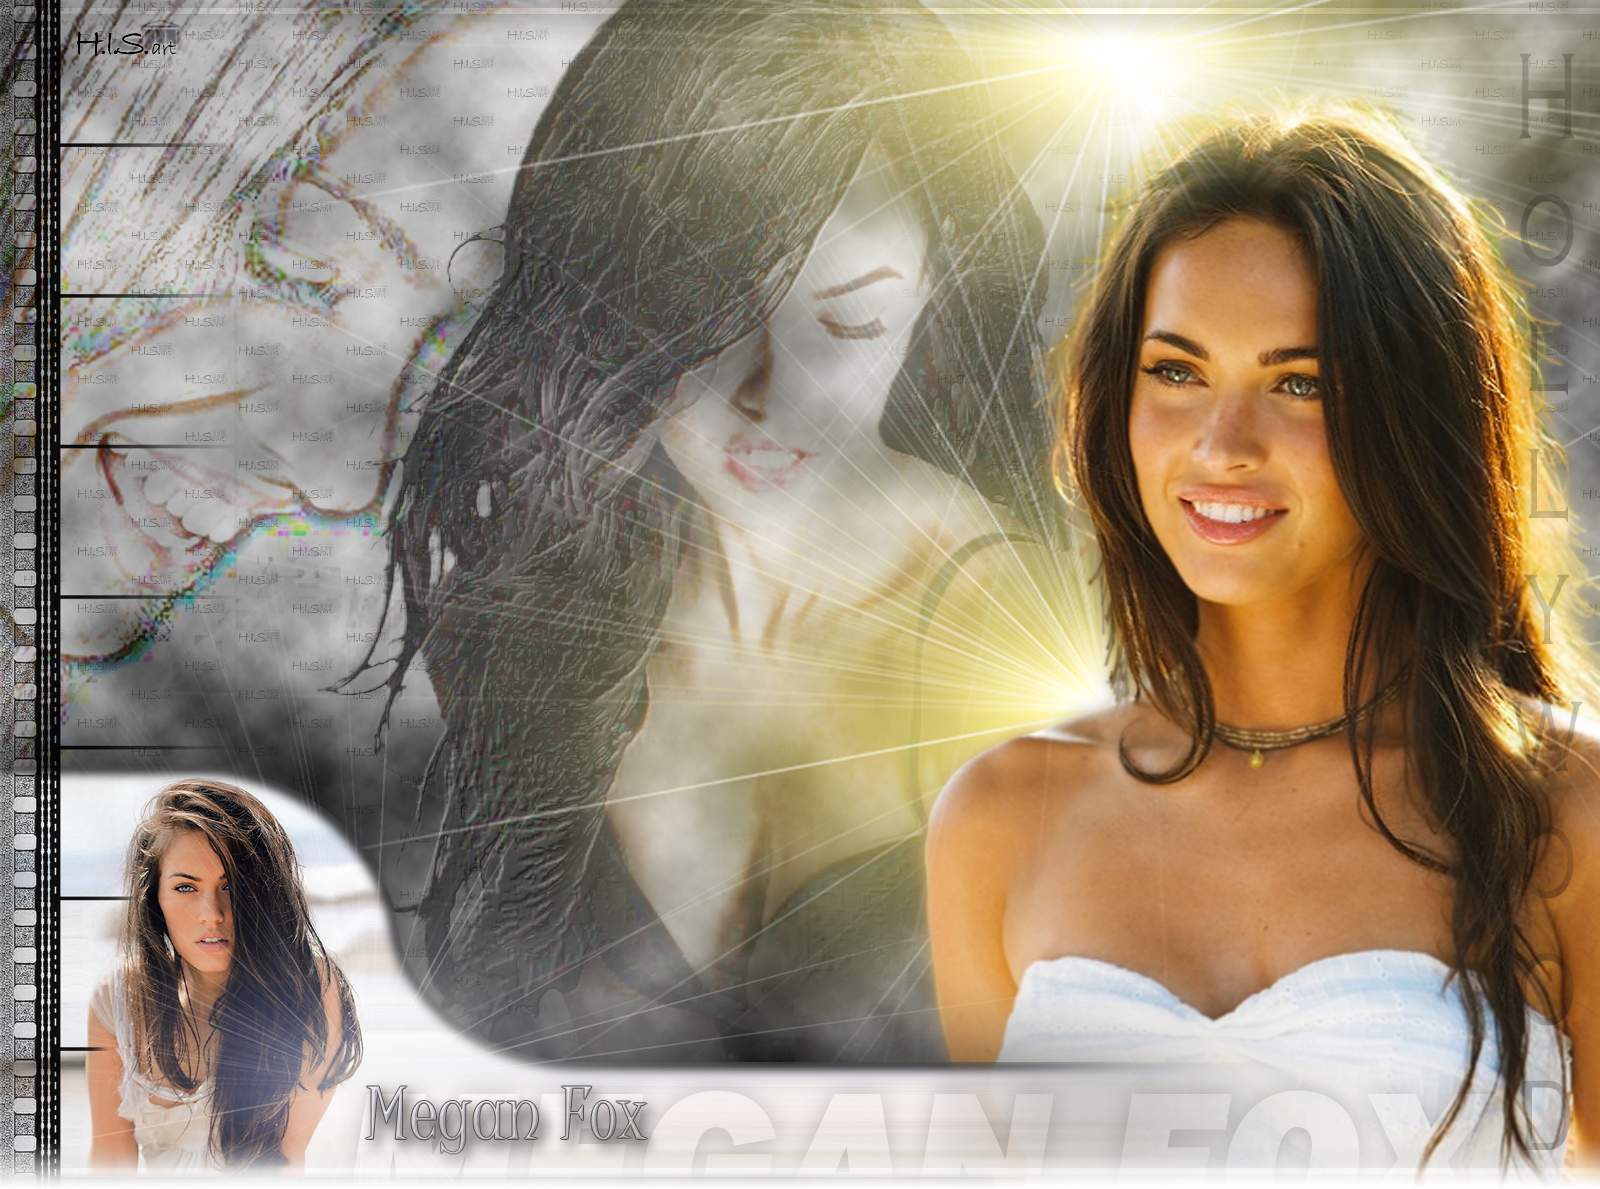 http://4.bp.blogspot.com/-4jNE0nYu5AU/T7j_nwJy6pI/AAAAAAAAAOk/Xx2rYfmMejg/s1600/megan-fox-hd-wallpapers-2012+3.jpg